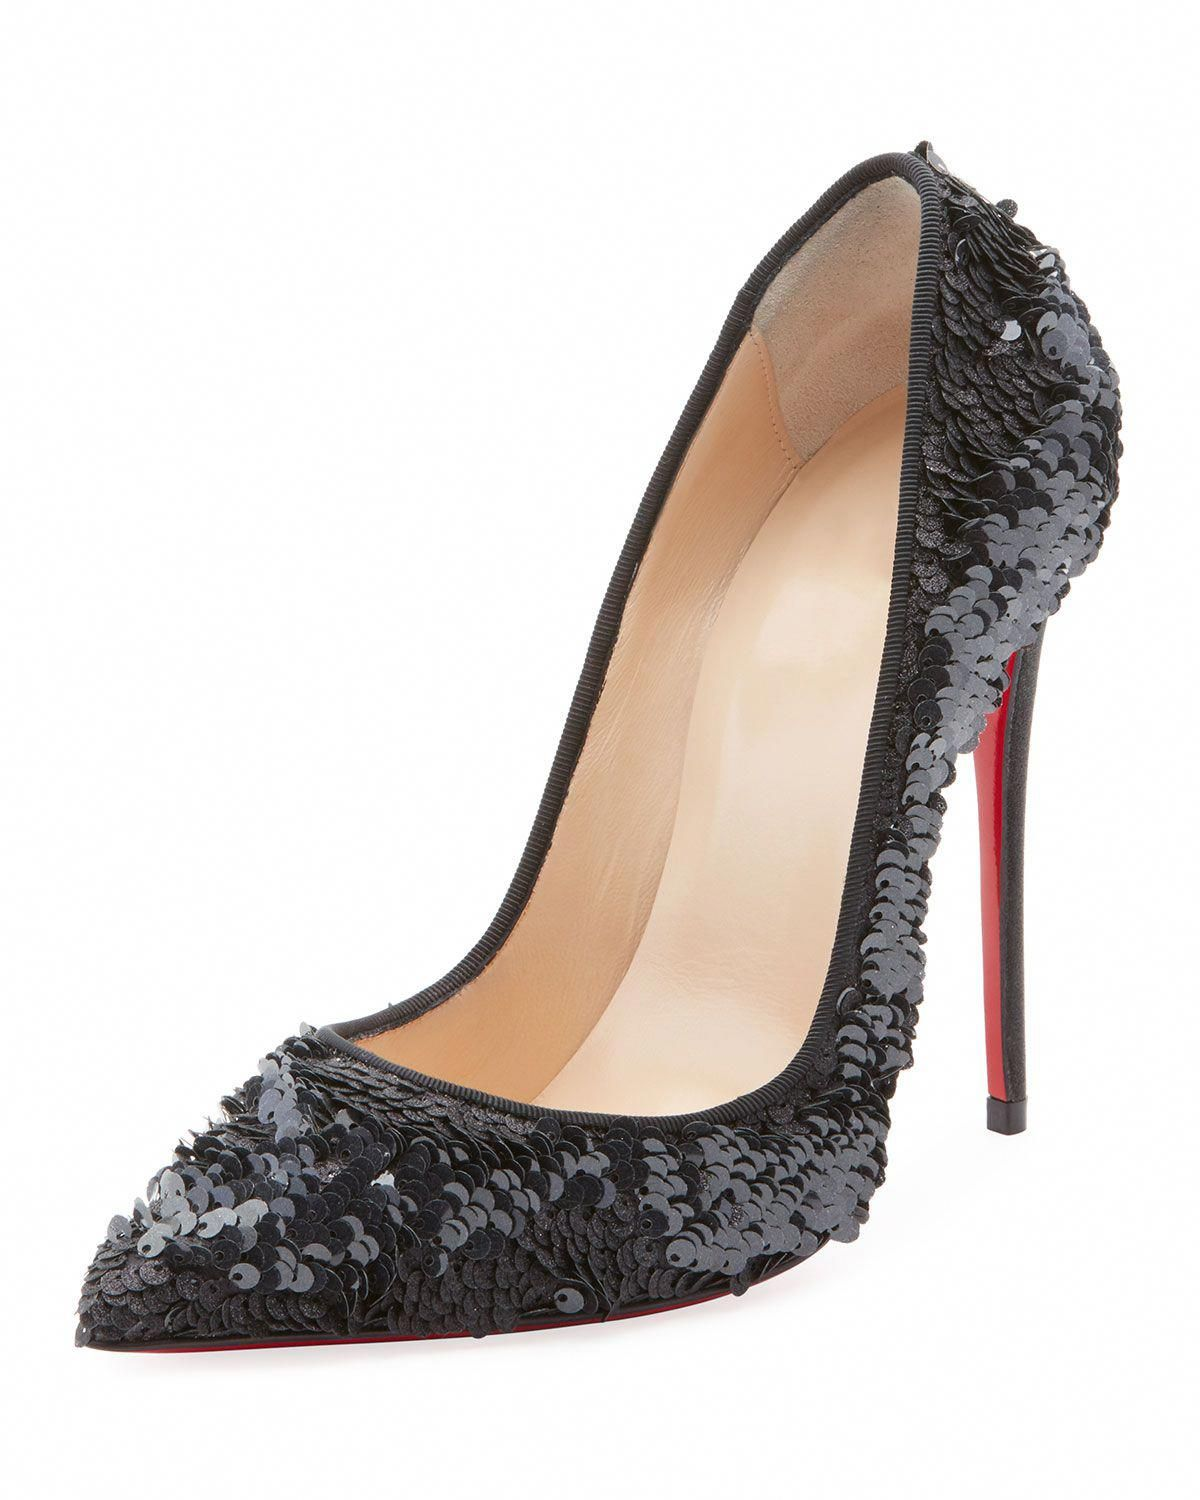 efa5c2f71d7 CHRISTIAN LOUBOUTIN SO KATE 120MM SEQUIN RED SOLE PUMP.  christianlouboutin   shoes